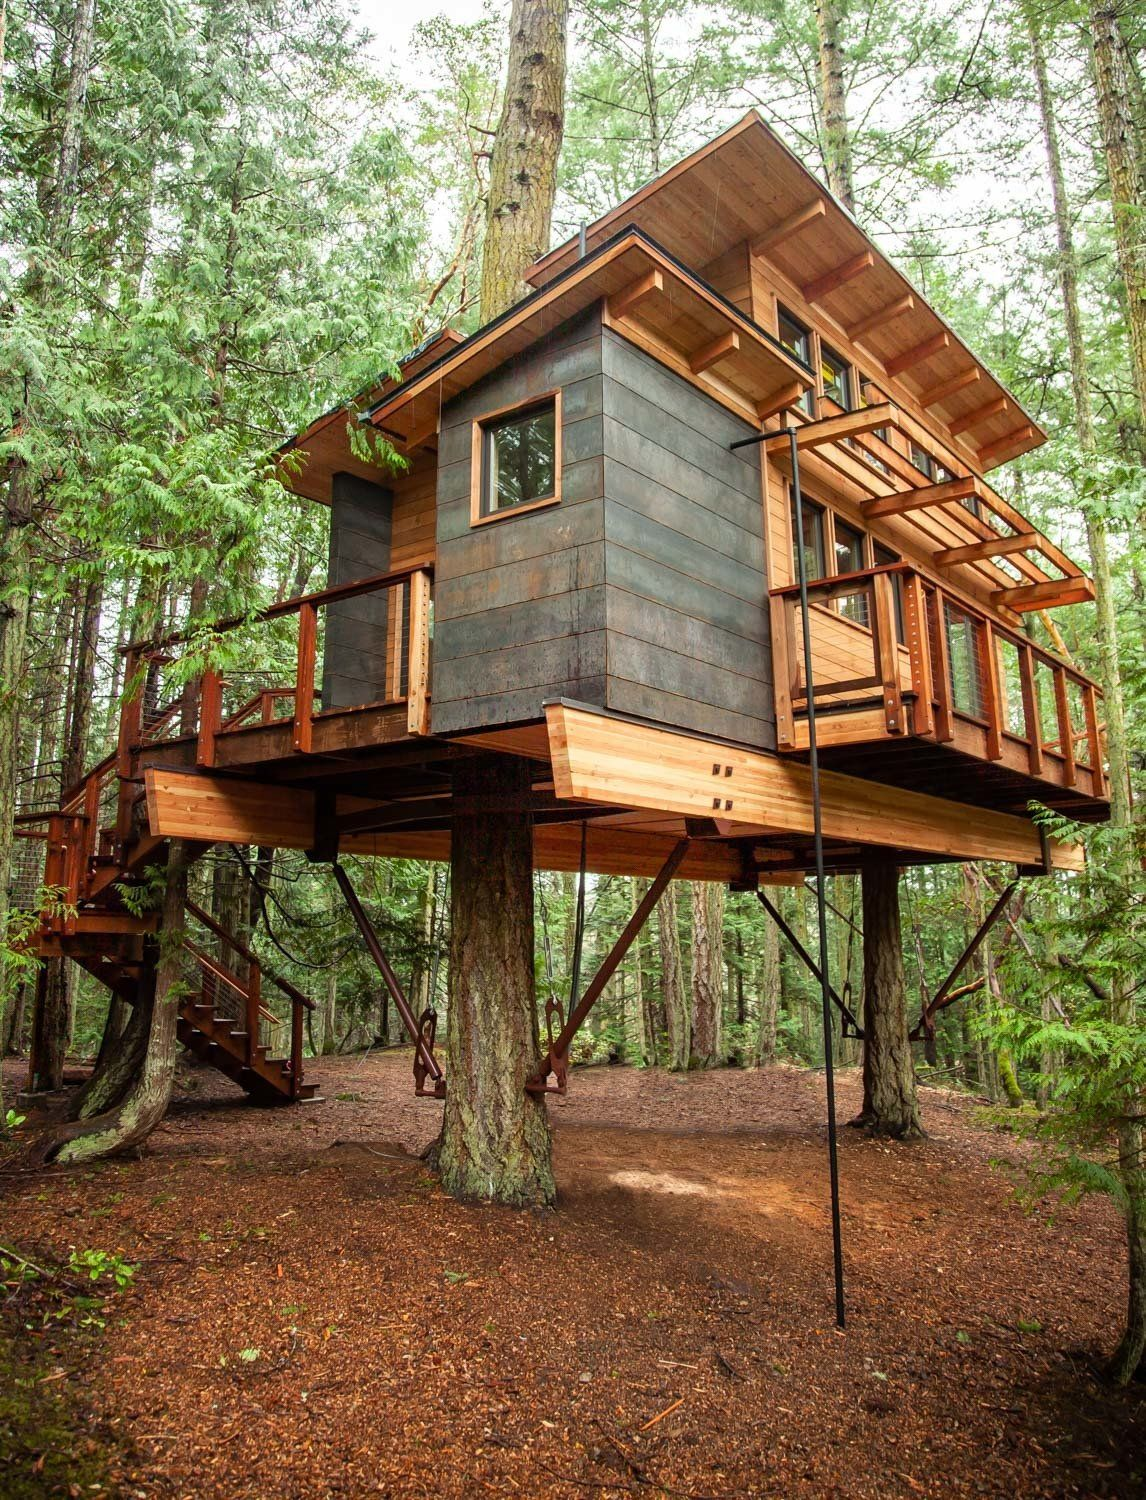 How Tree House Master Pete Nelson Built An Empire In The Woods Tree House Designs Tree House Plans Cool Tree Houses